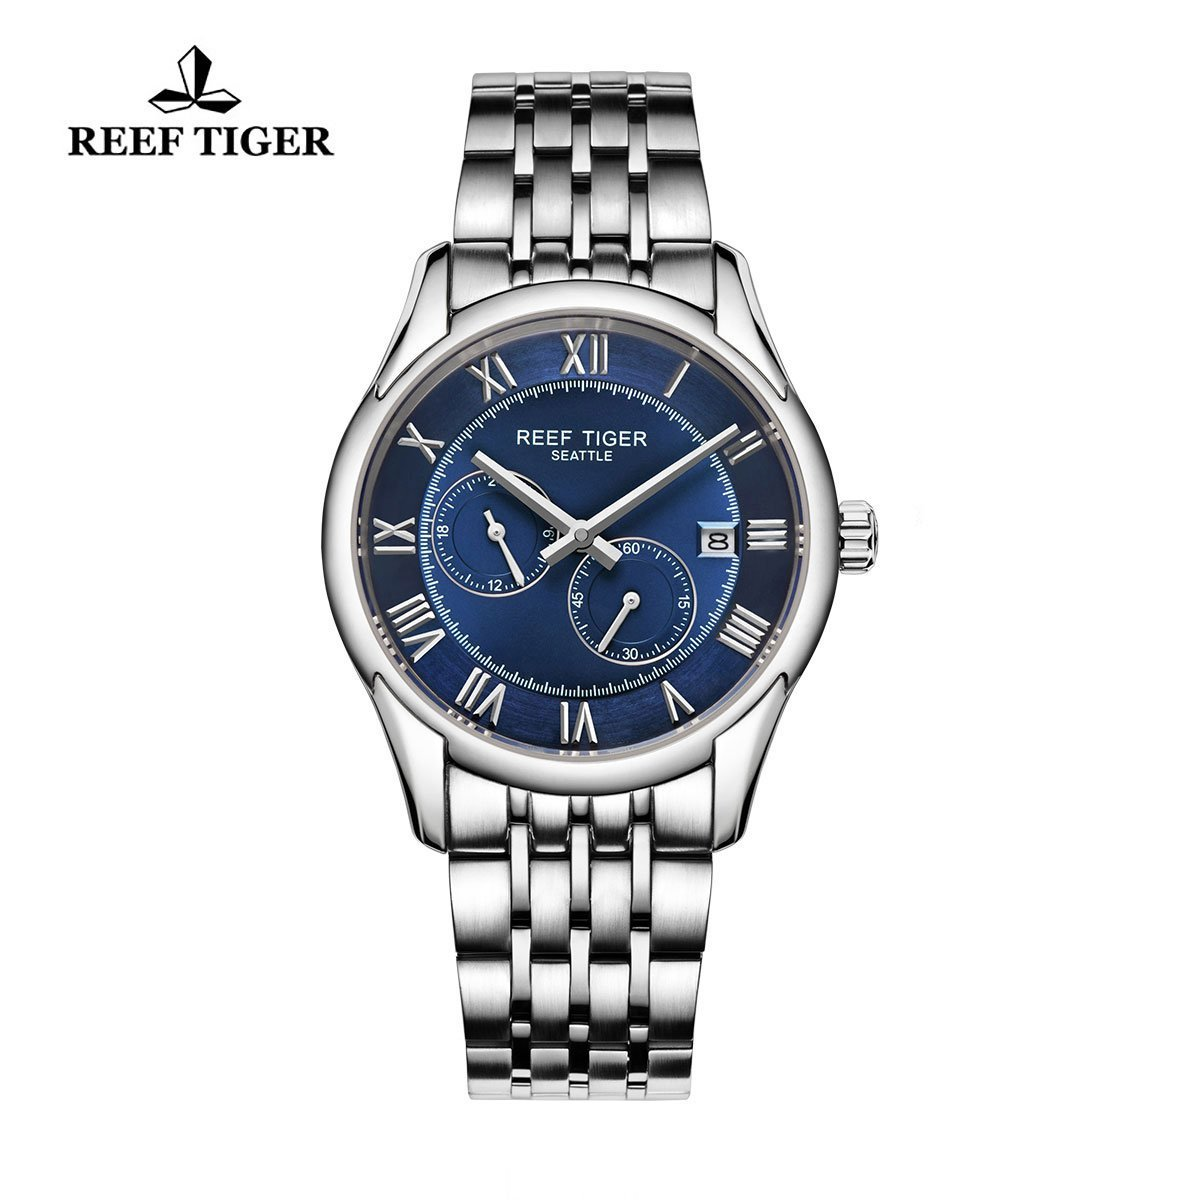 Reef Tiger Business Watches Date Four Hands Stainless Steel Blue Dial Watch RGA165 by REEF TIGER